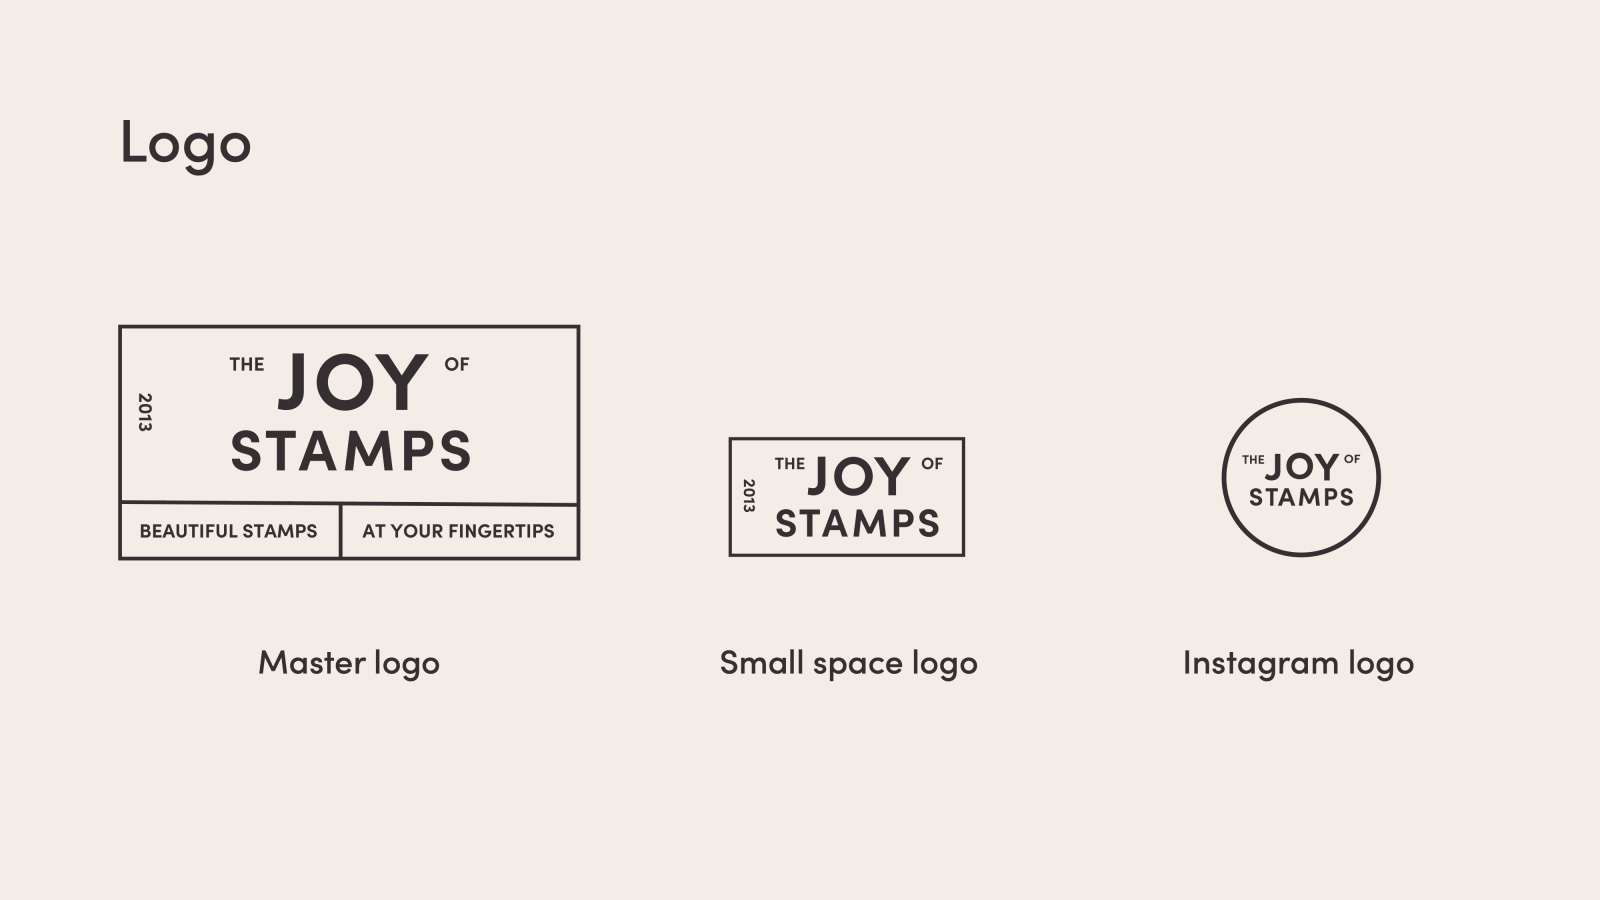 The Joy of Stamps Logo